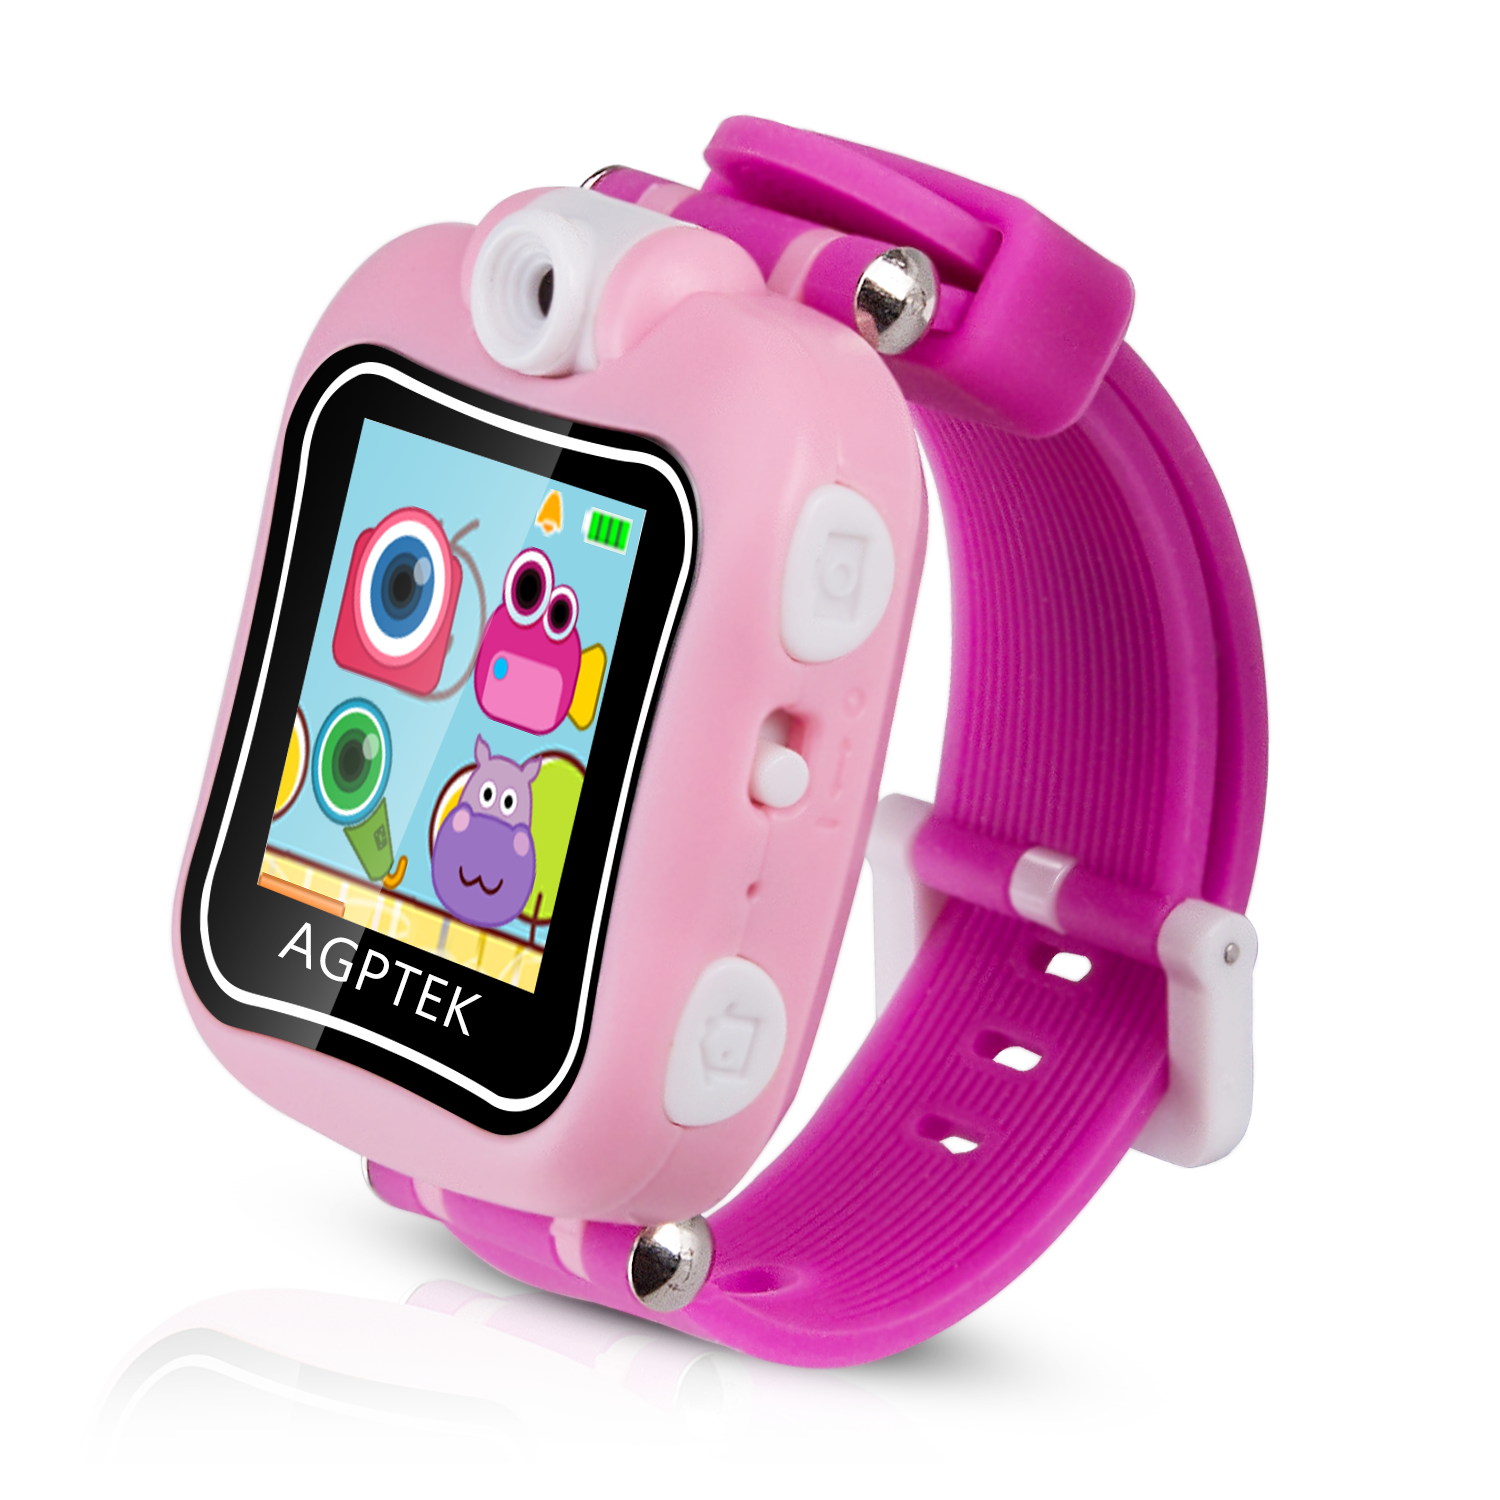 AGPTEK Kid Smartwatch with 90 Degree Rotating Camera, Video Recording, Games, Stopwatch, Alarm Clock, Red/Pink